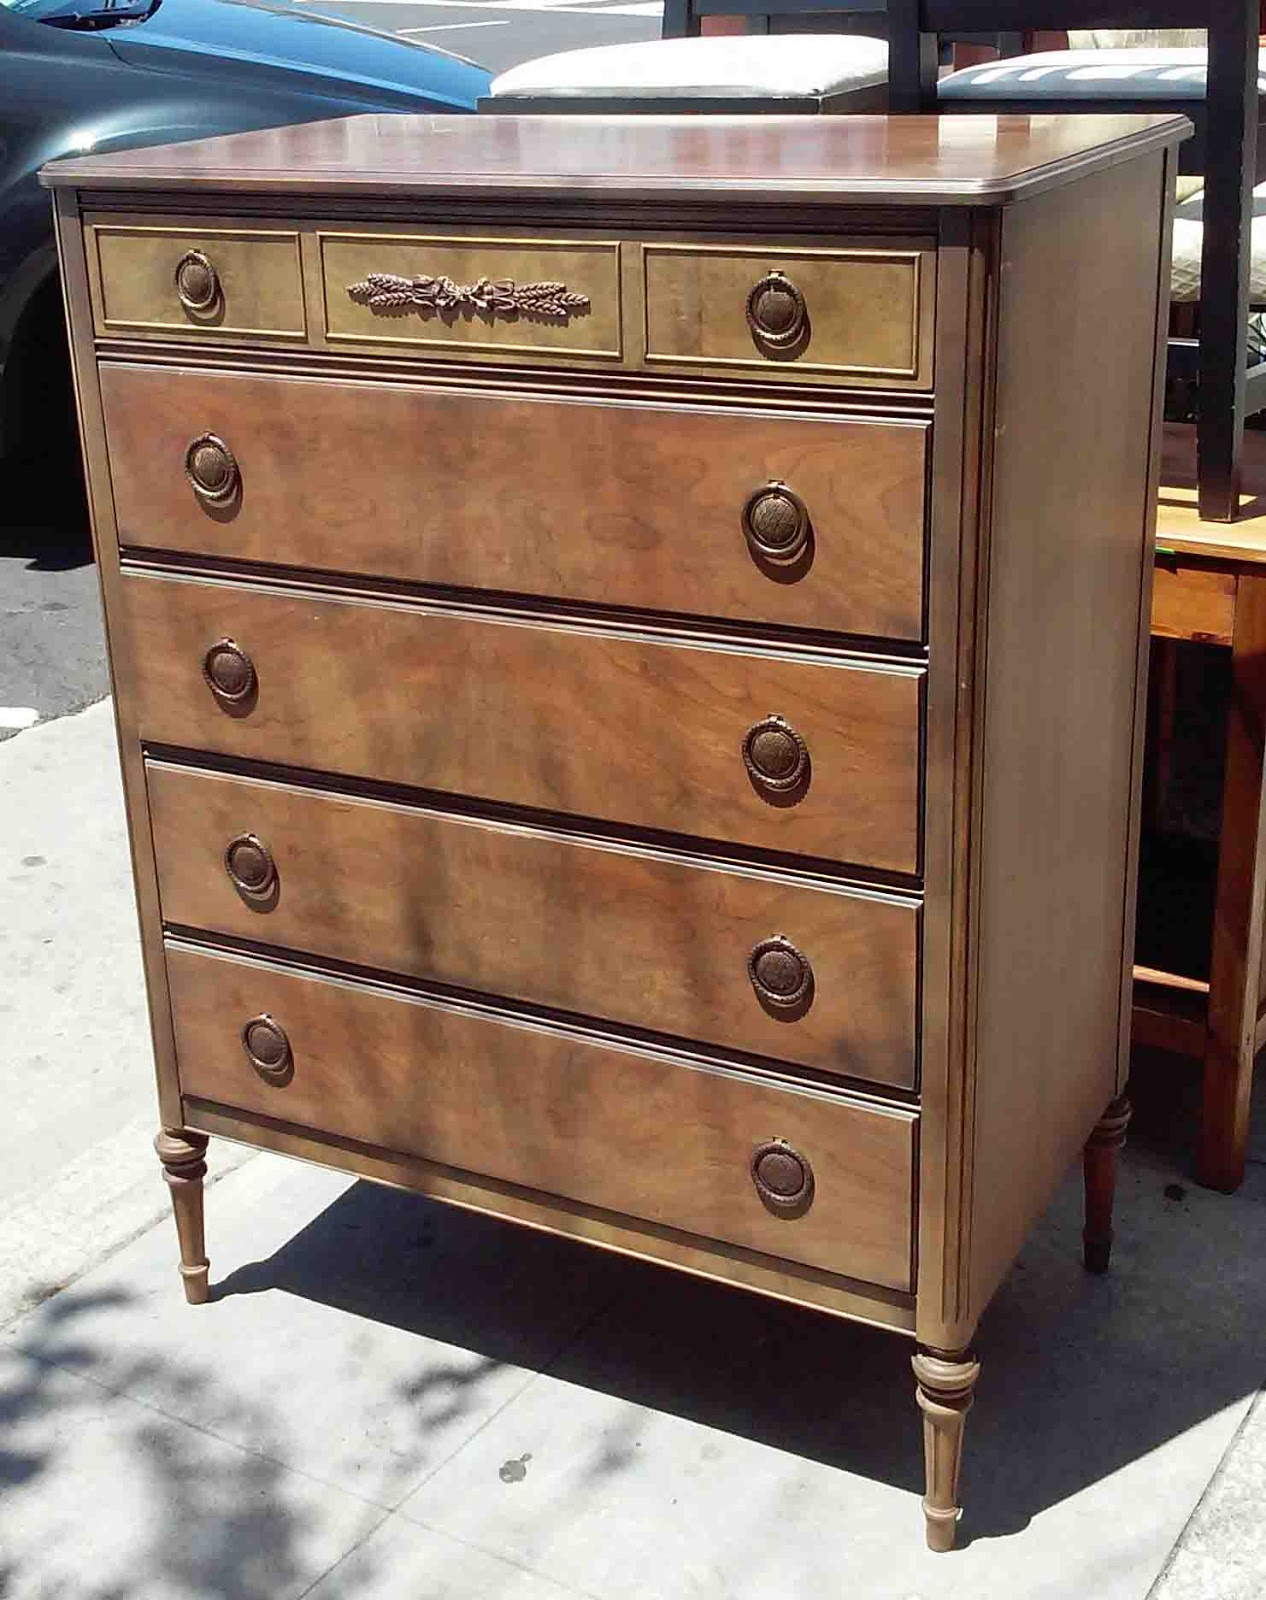 UHURU FURNITURE & COLLECTIBLES SOLD Vintage Chest of